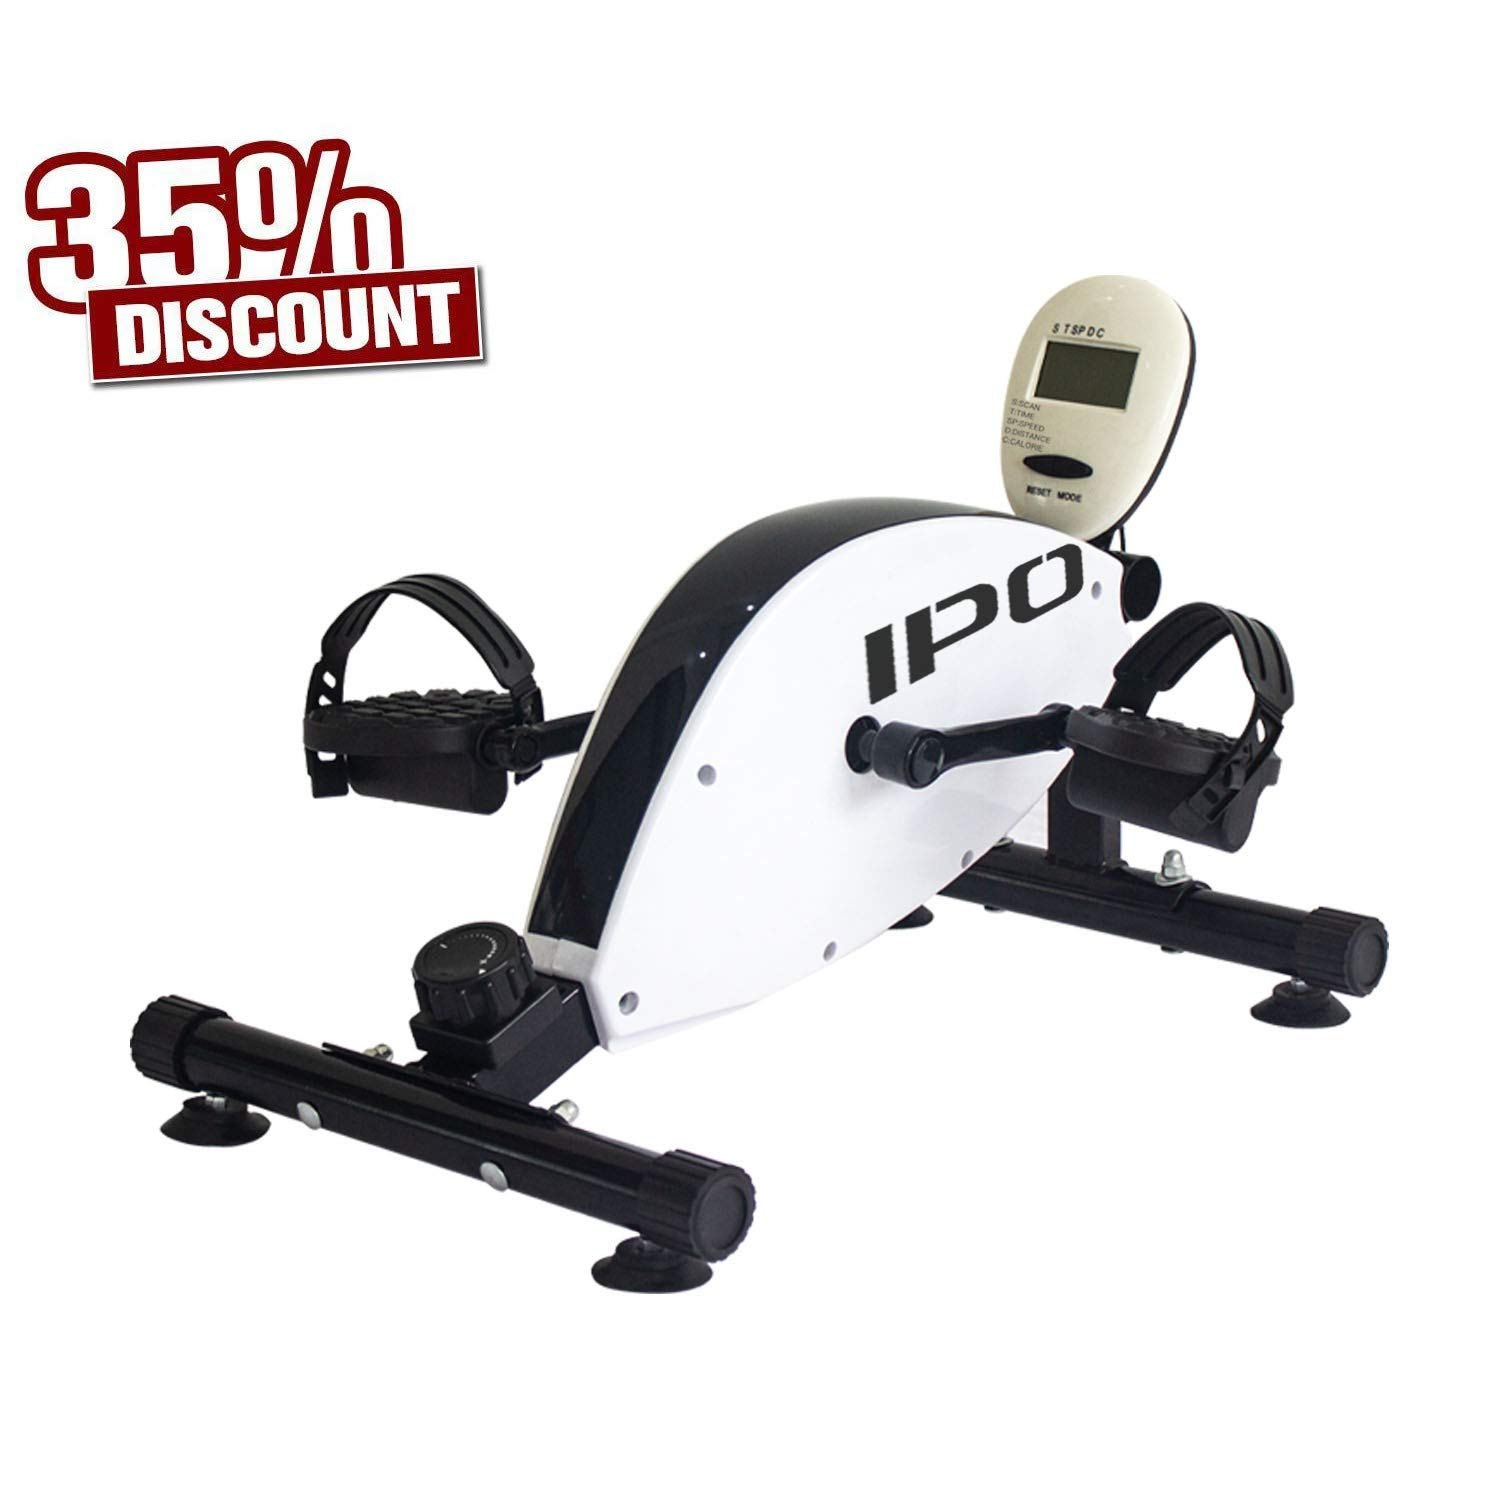 IPO Pedal Exerciser Mini Cycle Bike Under Desk Bike Pedal Exerciser Exercise Bike Mini Exercise Bike Under Desk Peddler Desk with Electronic Display and Handle White